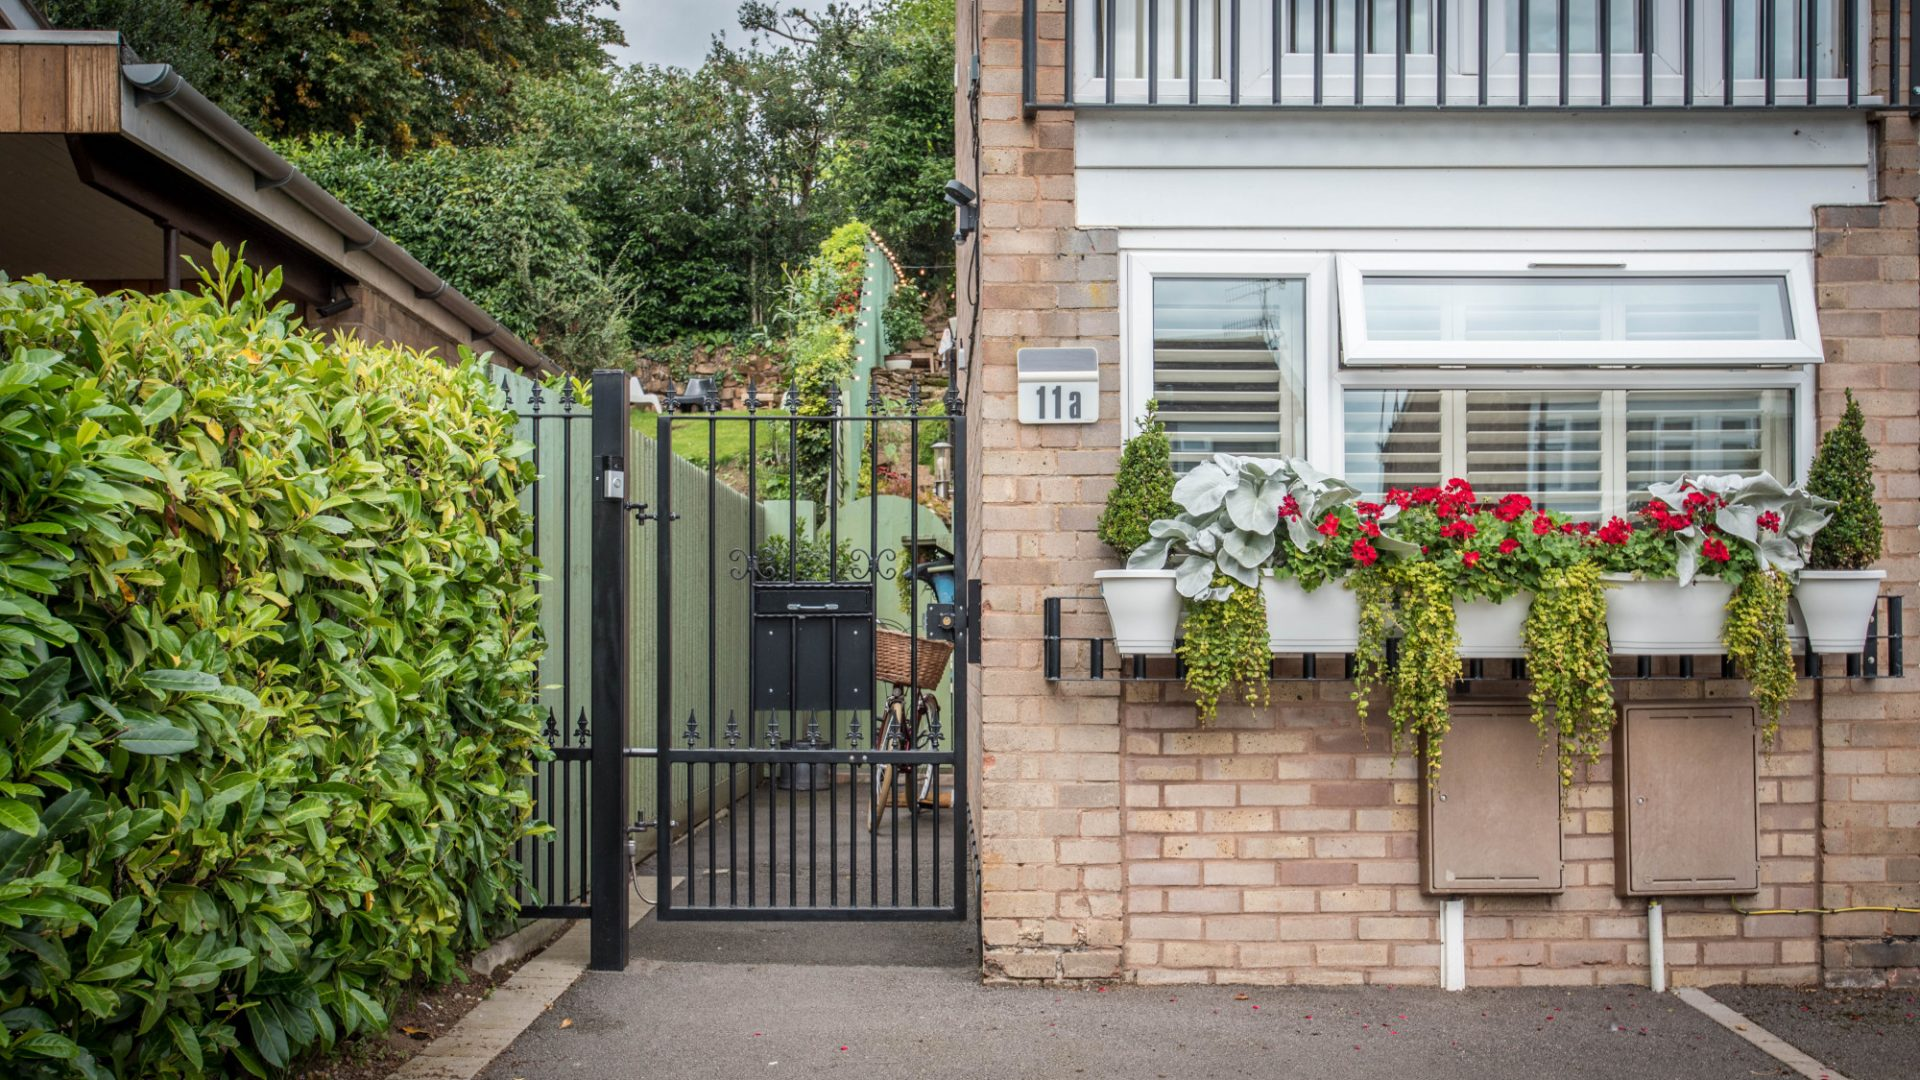 Hawkesworth Drive, Kenilworth for sale with Mr and Mrs Clarke estate agent